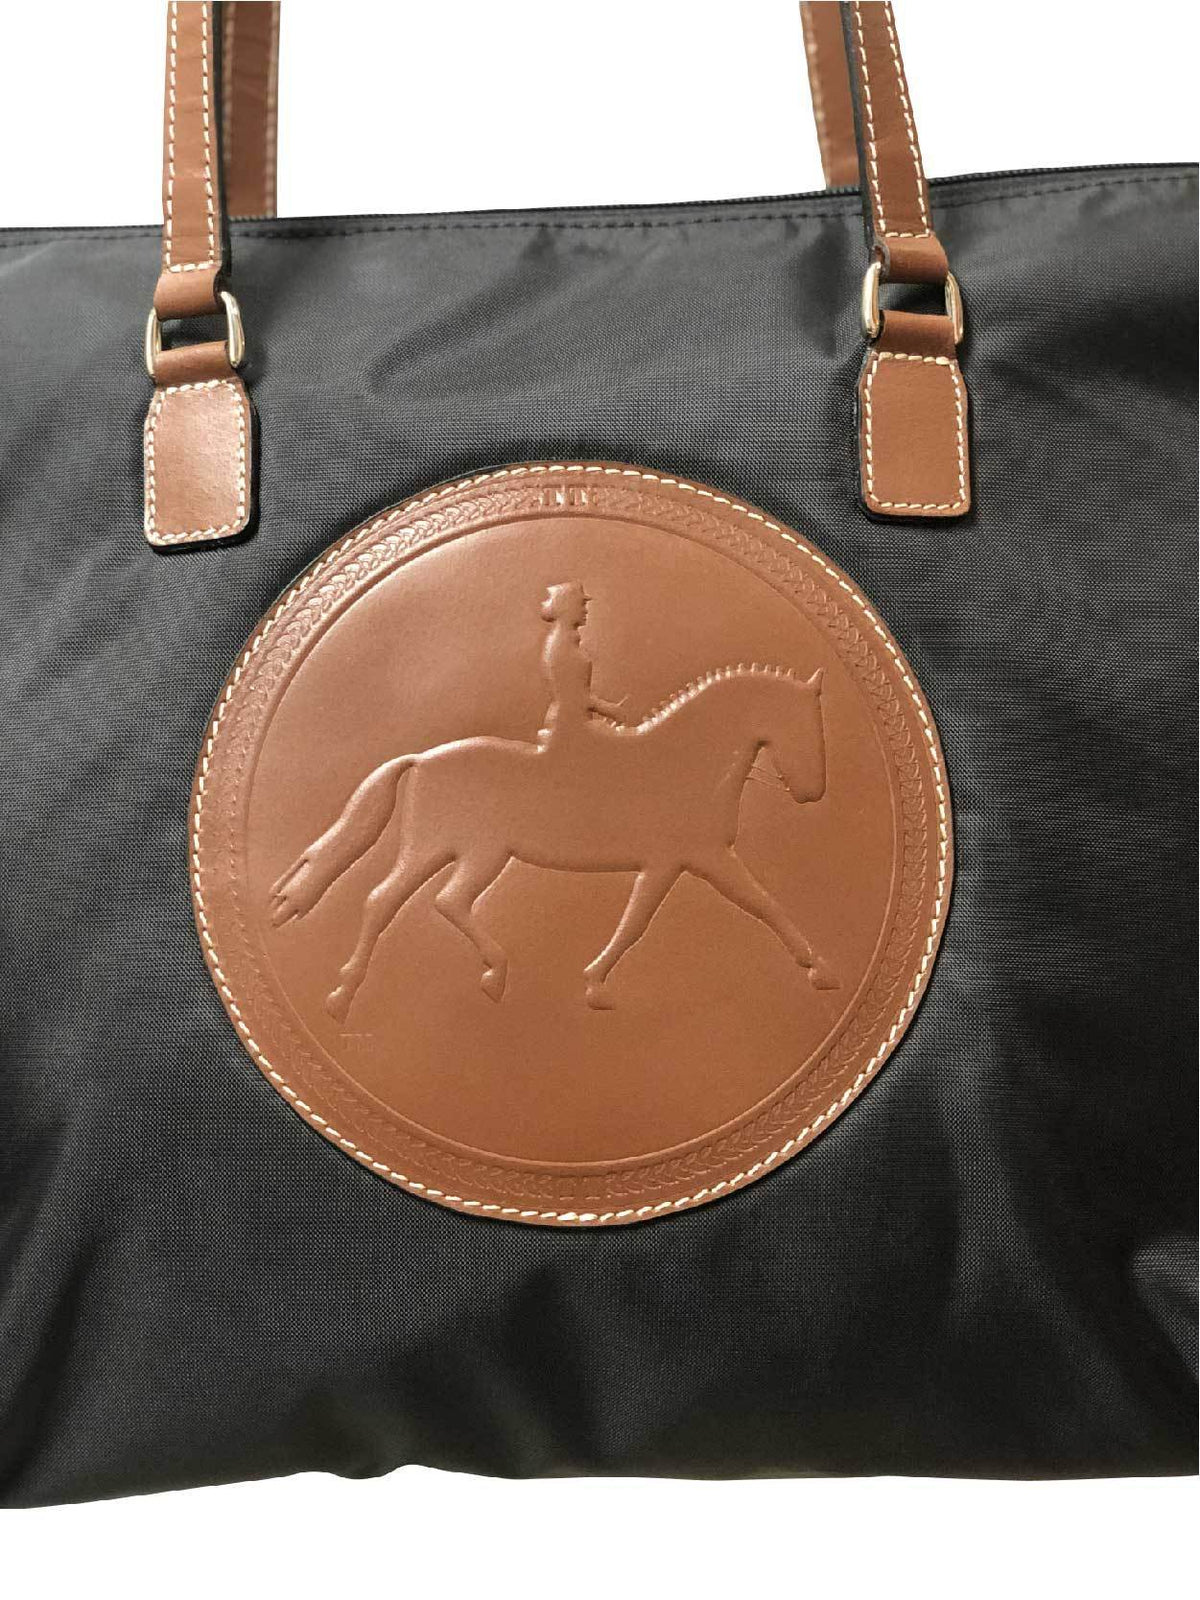 Tucker Tweed Equestrian Devon Day Bag - Dressage